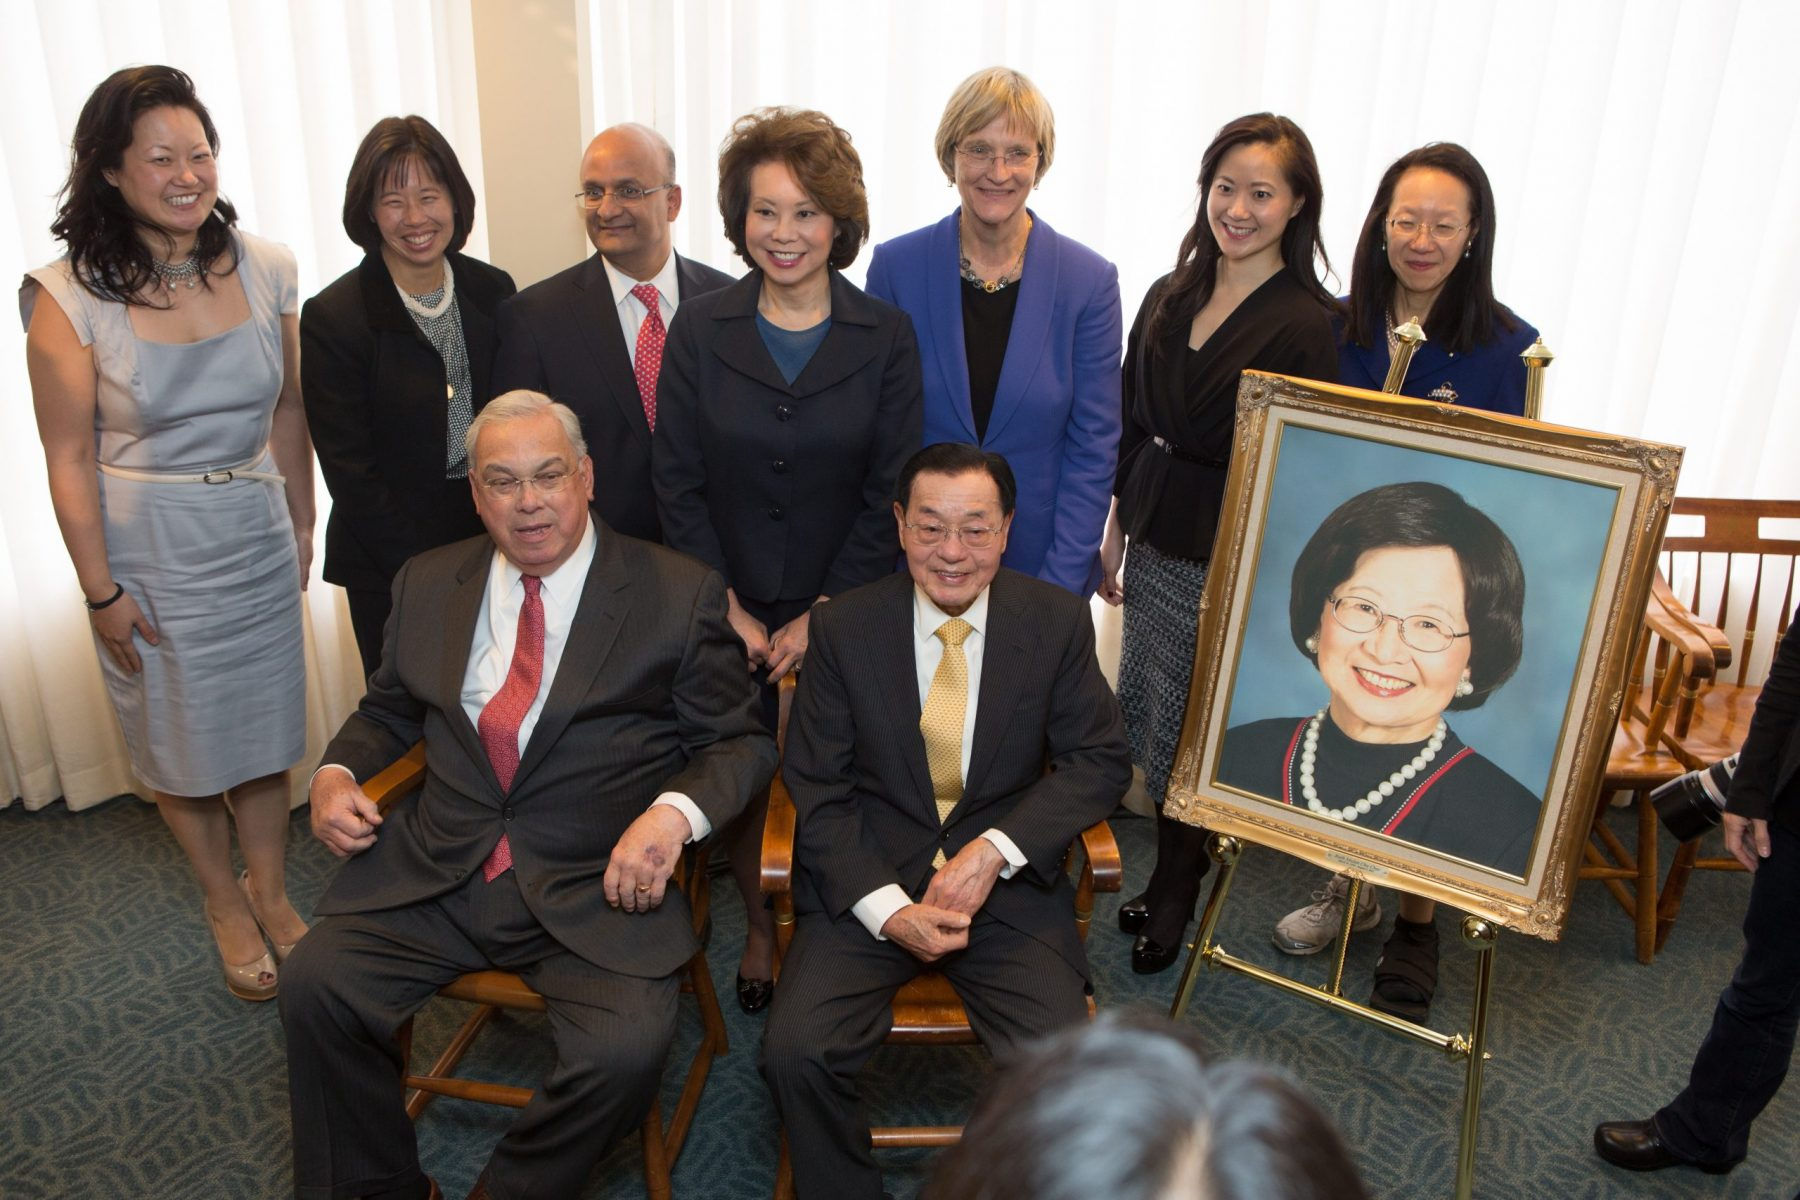 Announcement of major gift to Harvard. At press conference: Dr. James S. C. Chao & daughters including Elaine, May, Christine, Grace & Angela Chao, with Boston Mayor Thomas Menino, Harvard President Drew Faust, HBS Dean Nitin Nohria in honor of Mrs. Ruth Mulan Chu Chao's life and legacy.